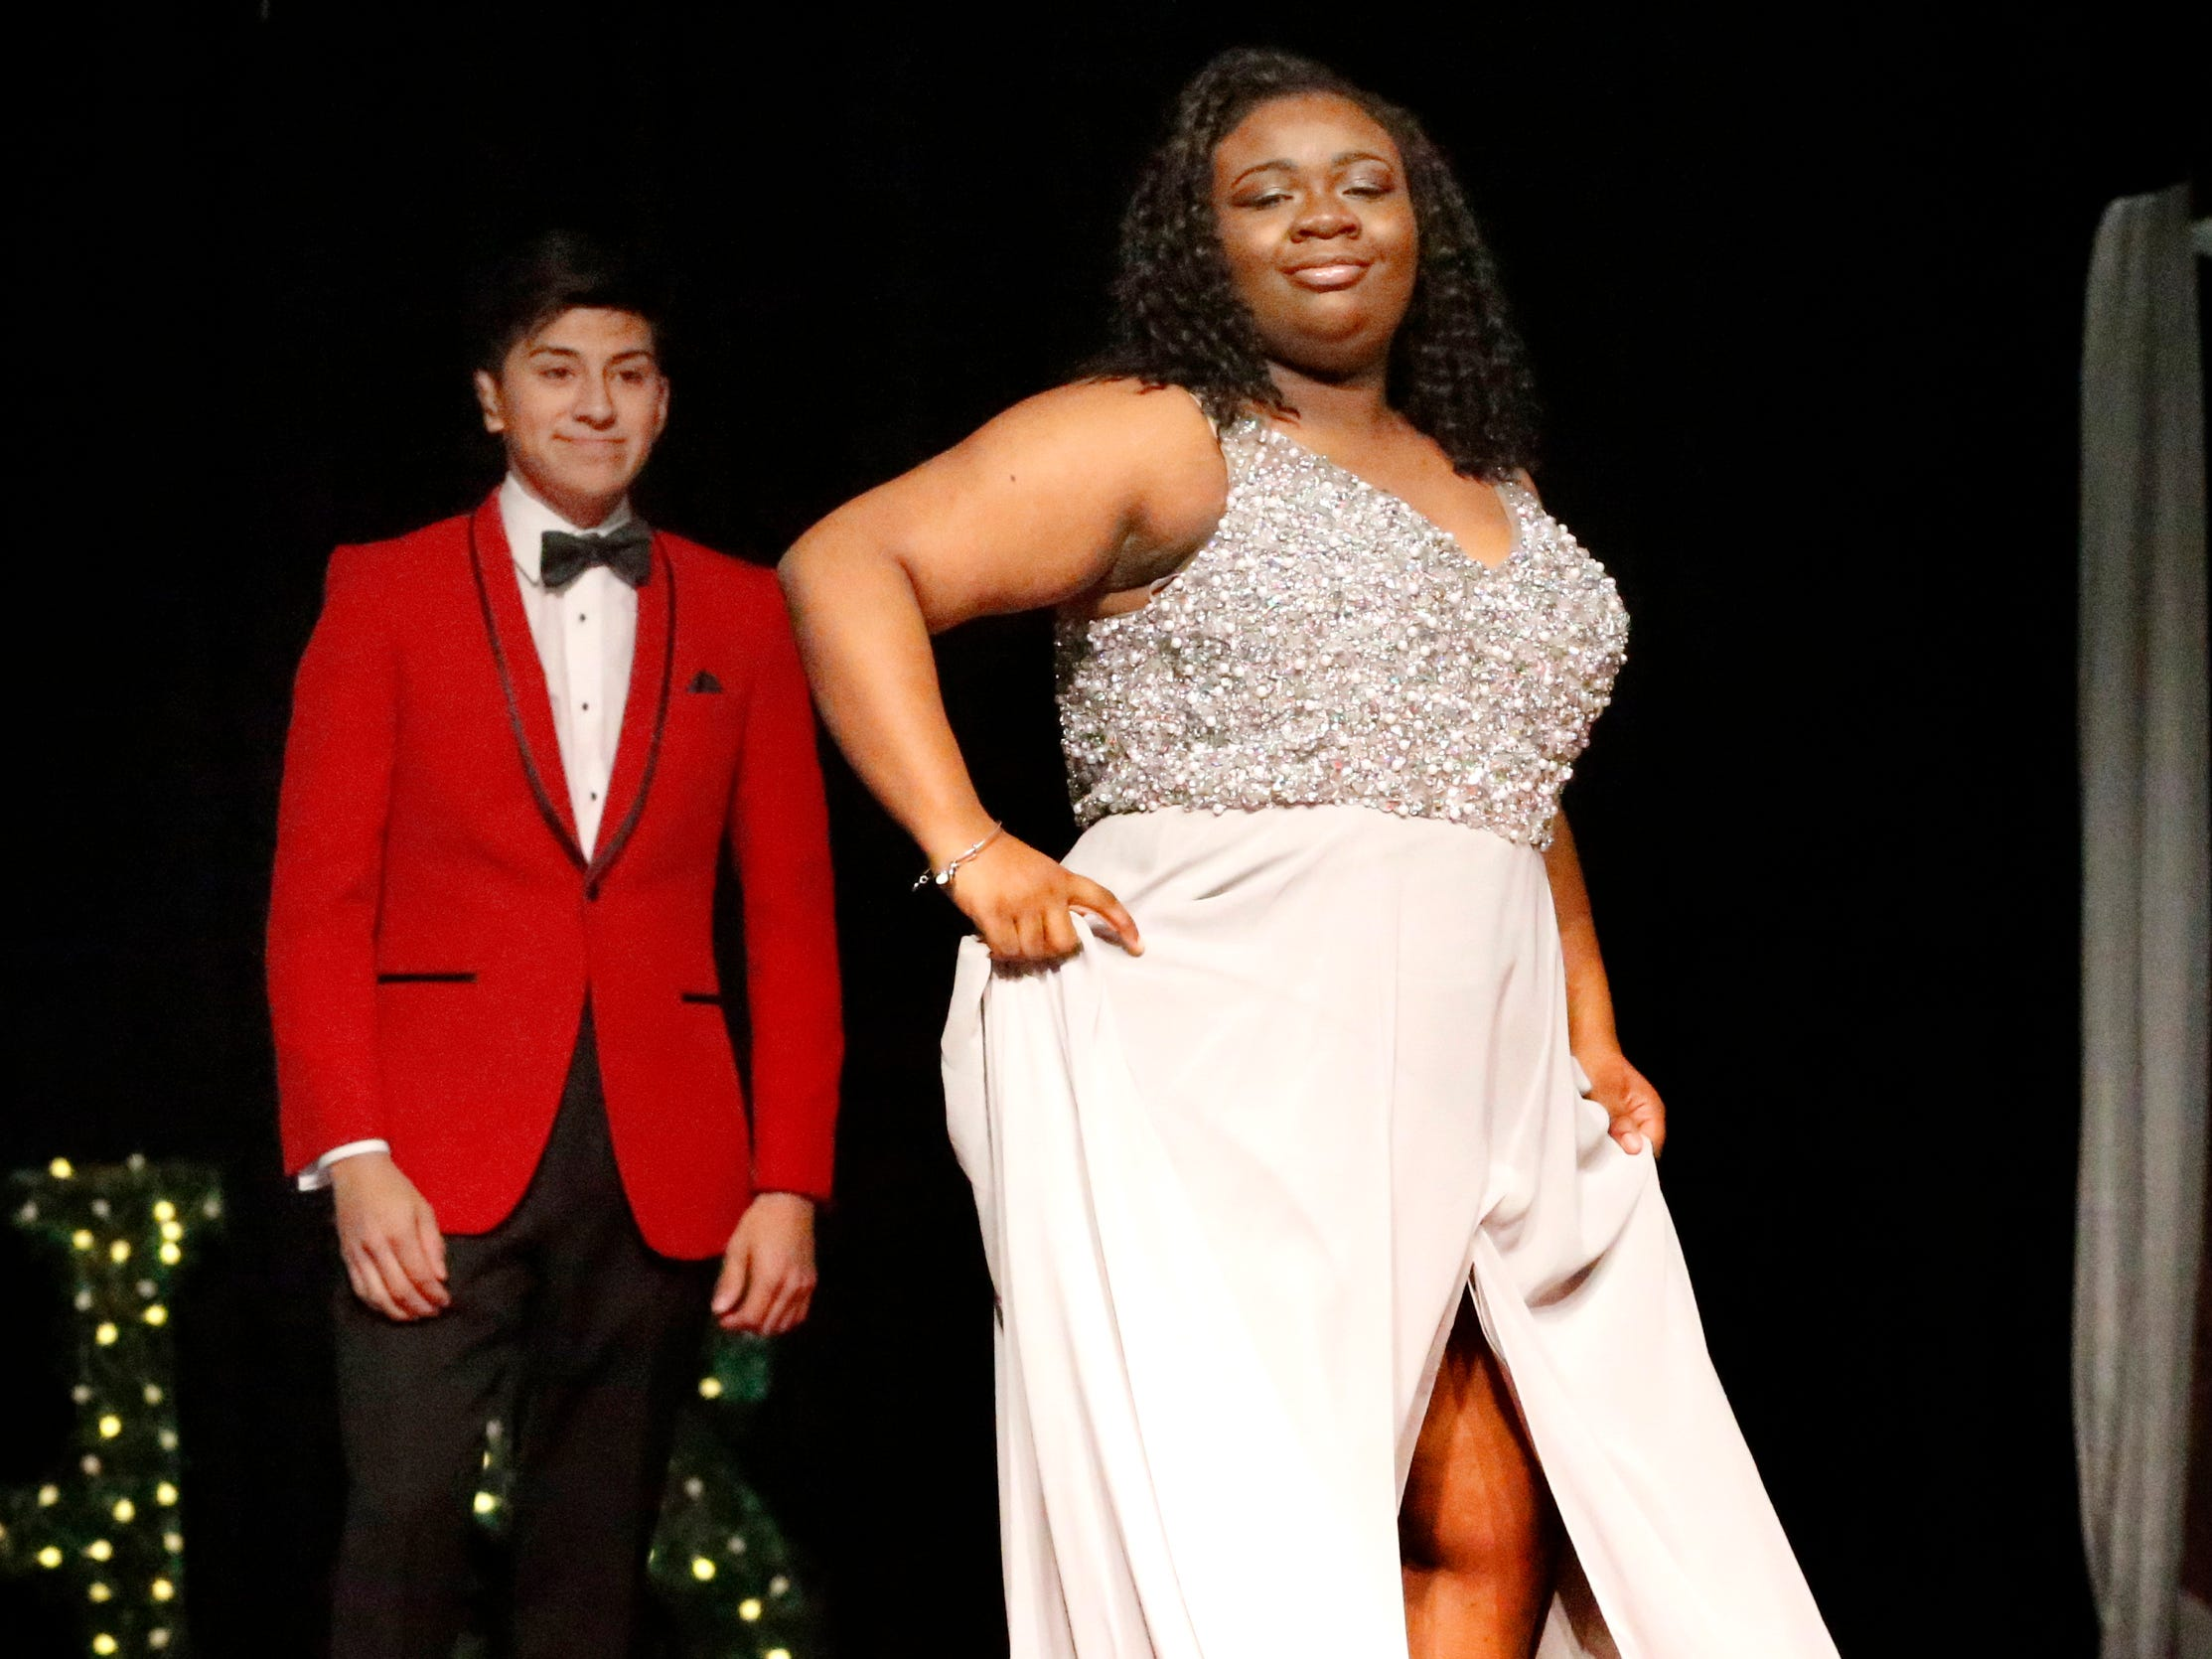 Shakayla Davis steps forward to show off her dress as Abraham Hernadez waits to show off his tux during the Siegel Prom Fashion show on Thursday, Feb. 14, 2019.